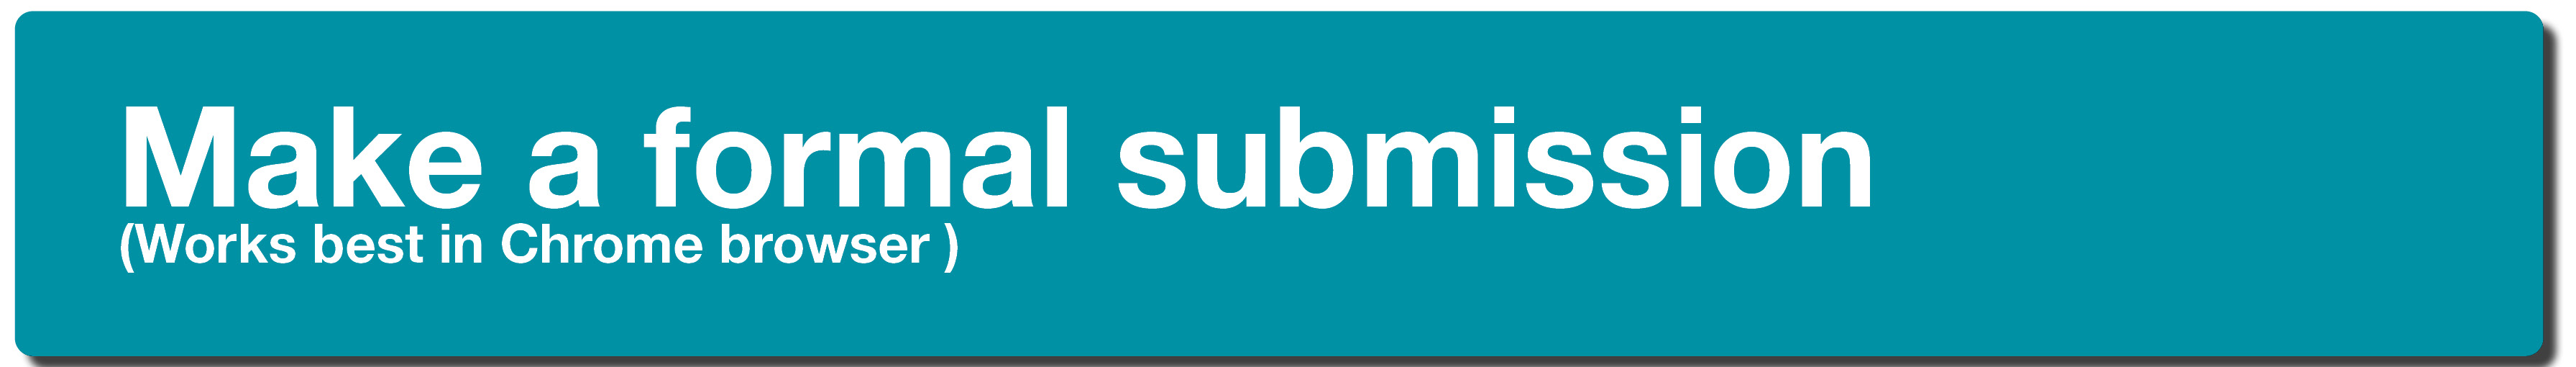 Make a formal submissions (works best in Chrome browser)